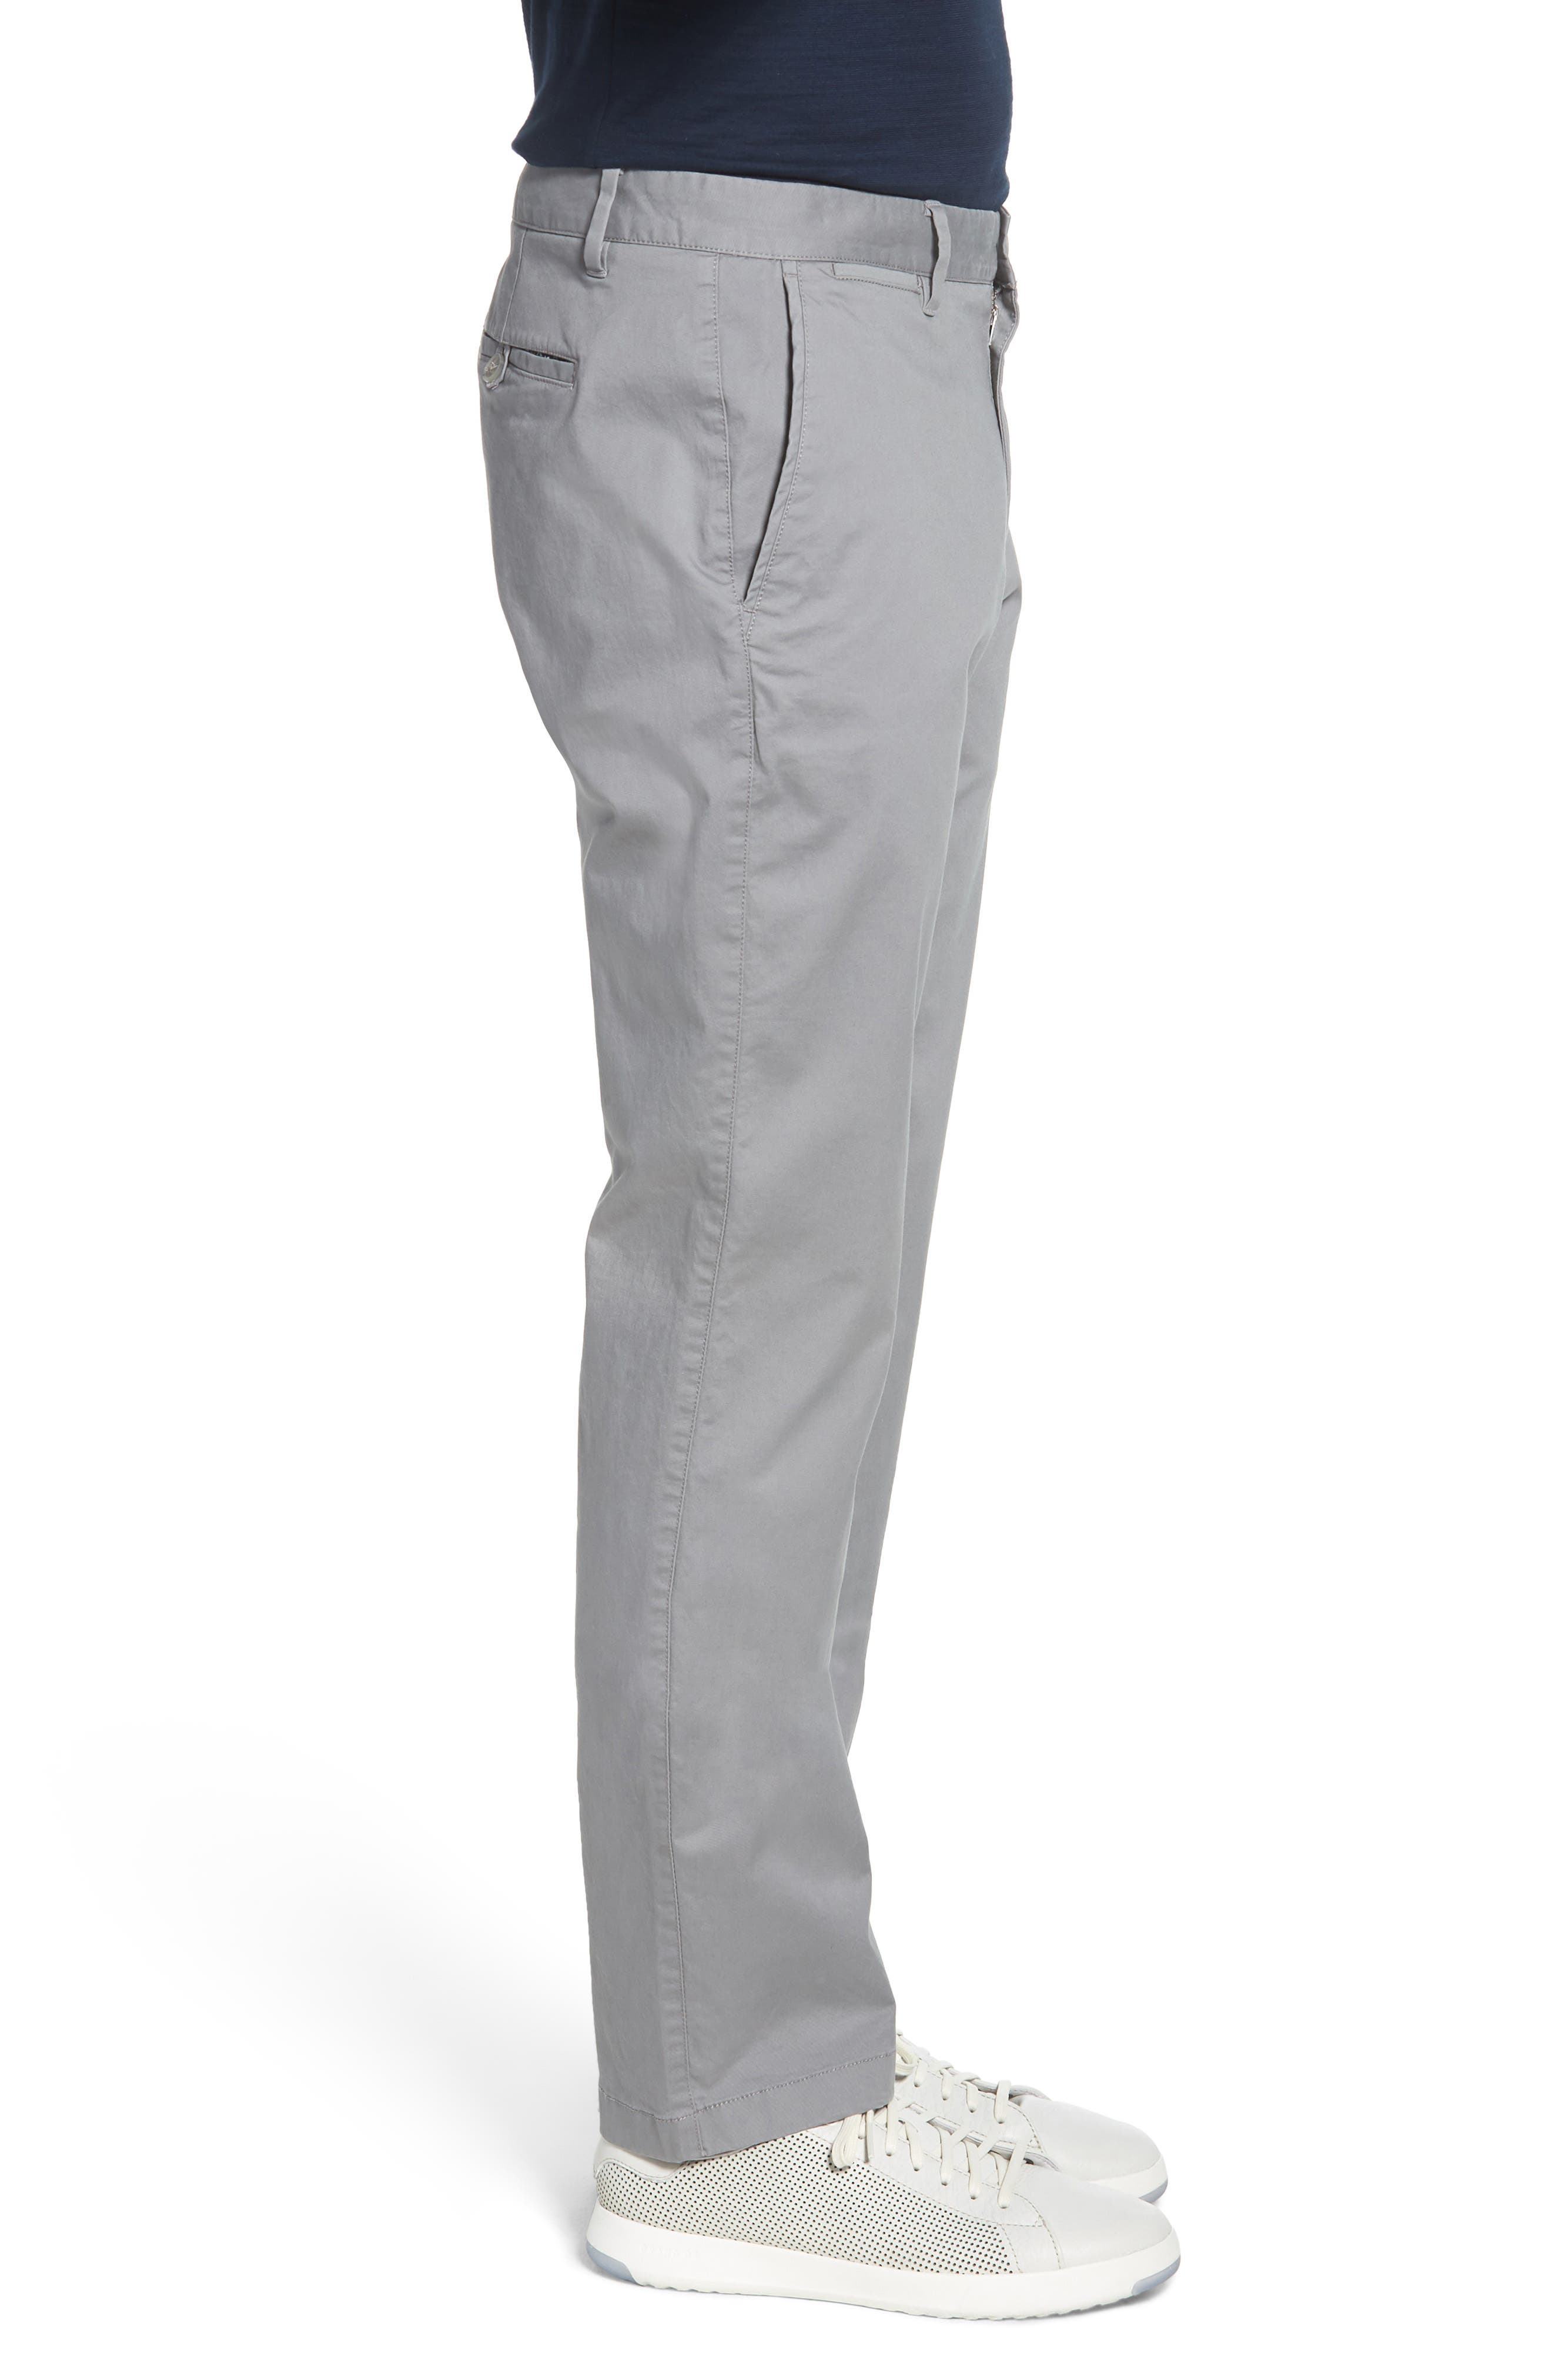 Summer Weight Slim Fit Stretch Chinos,                             Alternate thumbnail 3, color,                             020